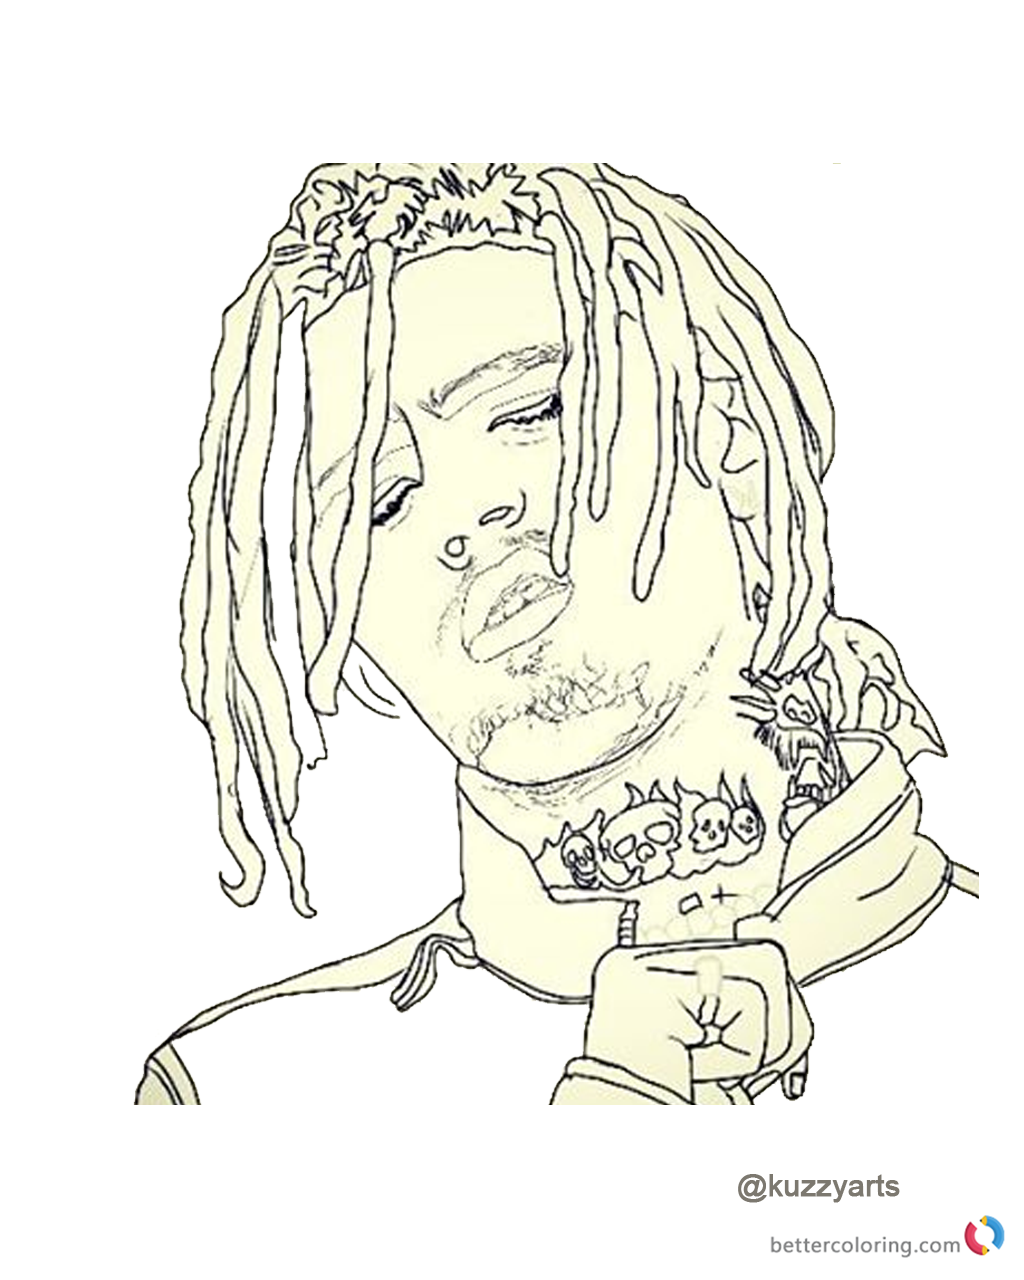 lil pump coloring pages Lil Pump Coloring Picture Fan art   Free Printable Coloring Pages lil pump coloring pages